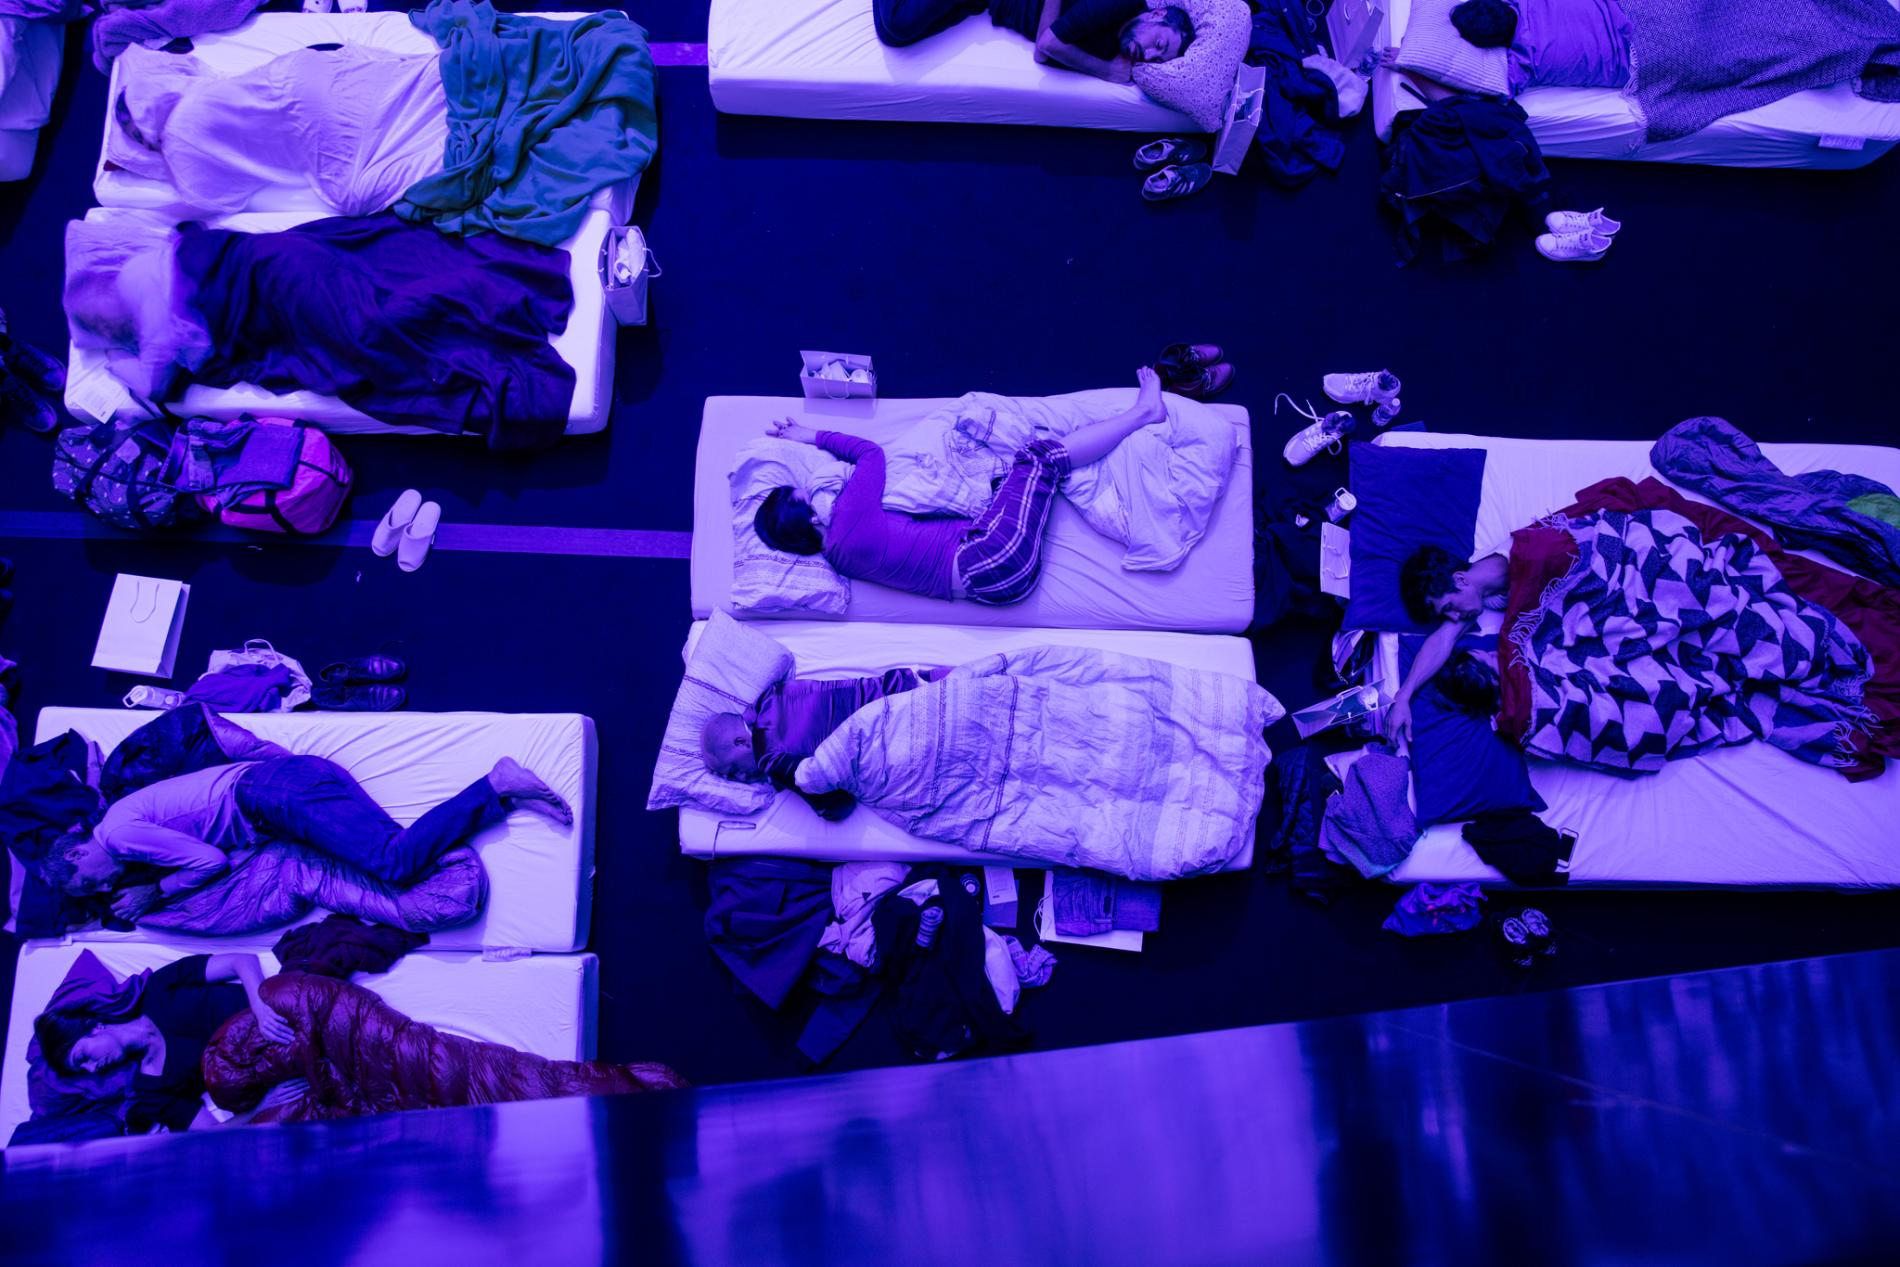 sleep-max-richter-concert-paris-beds-post-minimalism.adapt.1900.1.jpg